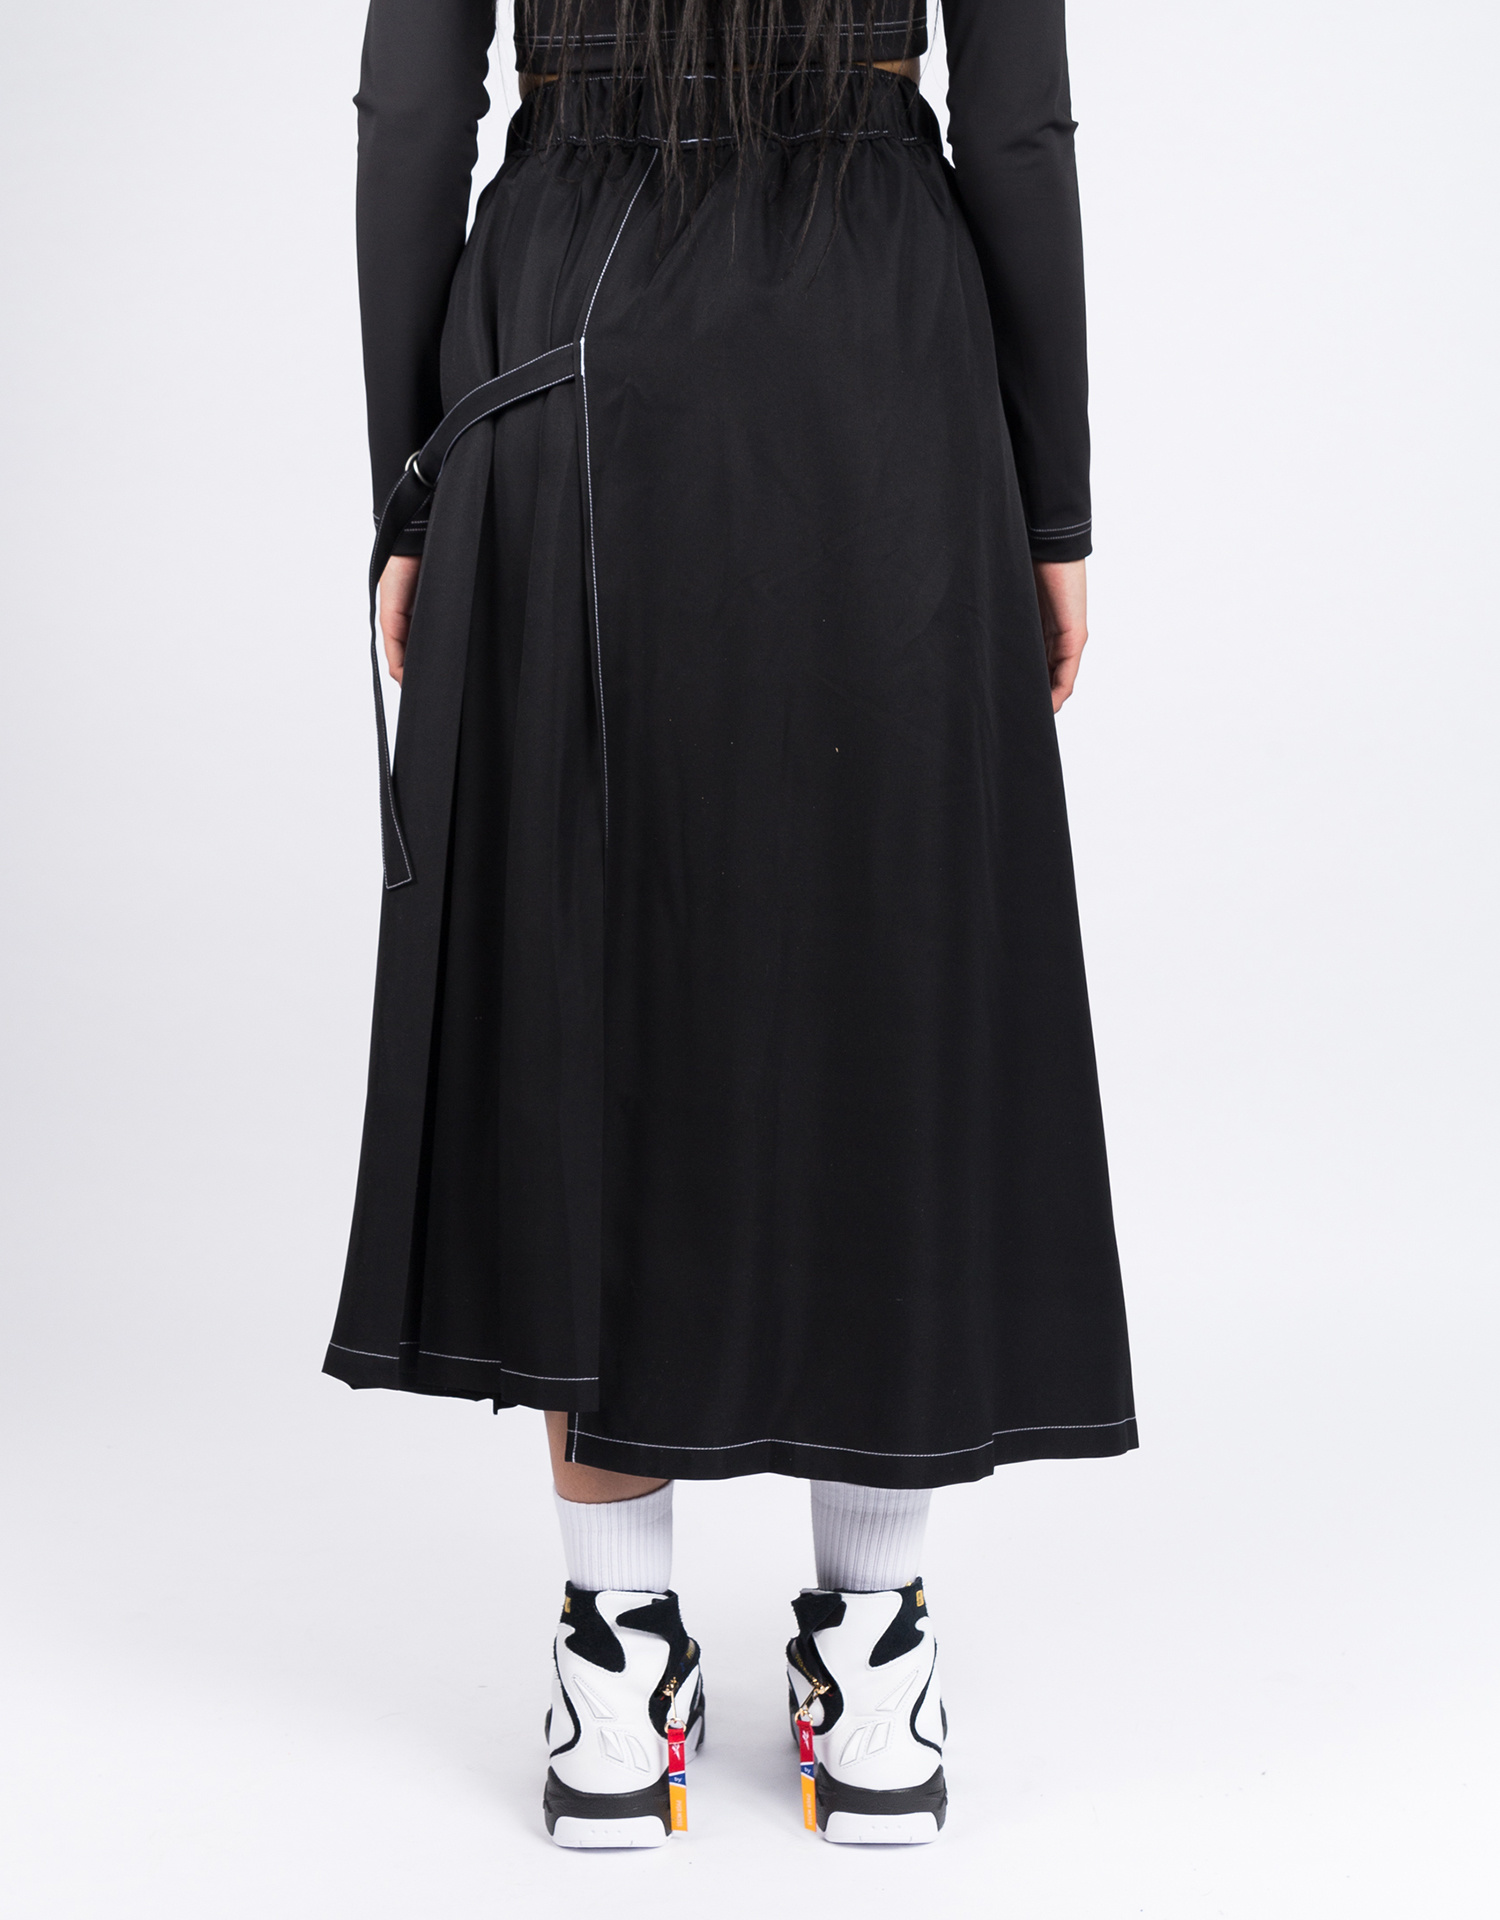 Reebok X Pyer Moss ring skirt    black